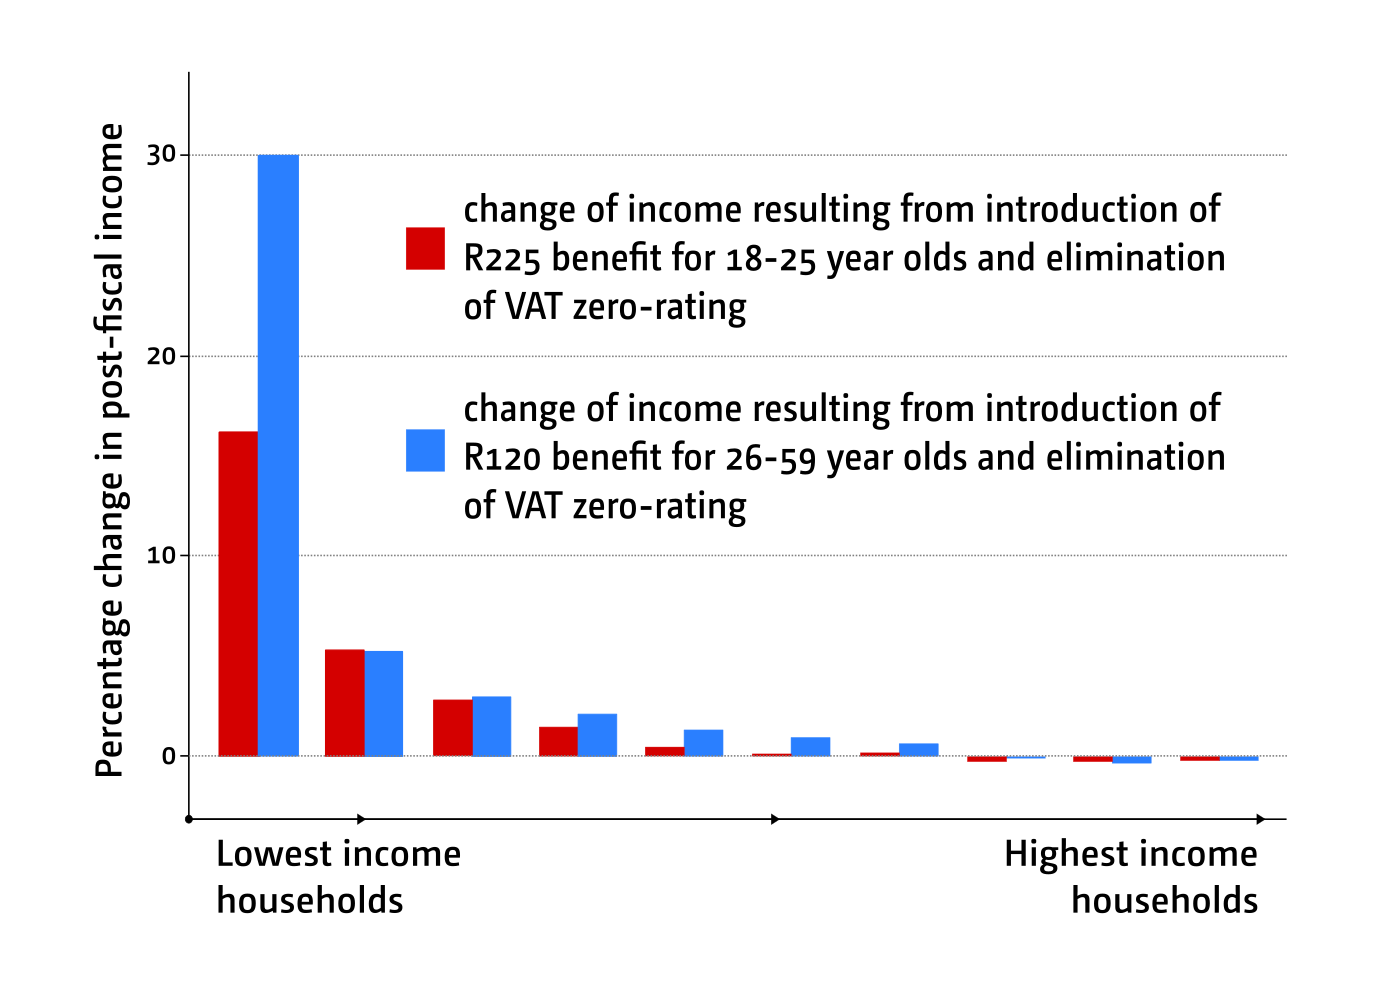 Figure 2: The impact of two reform scenarios on household income